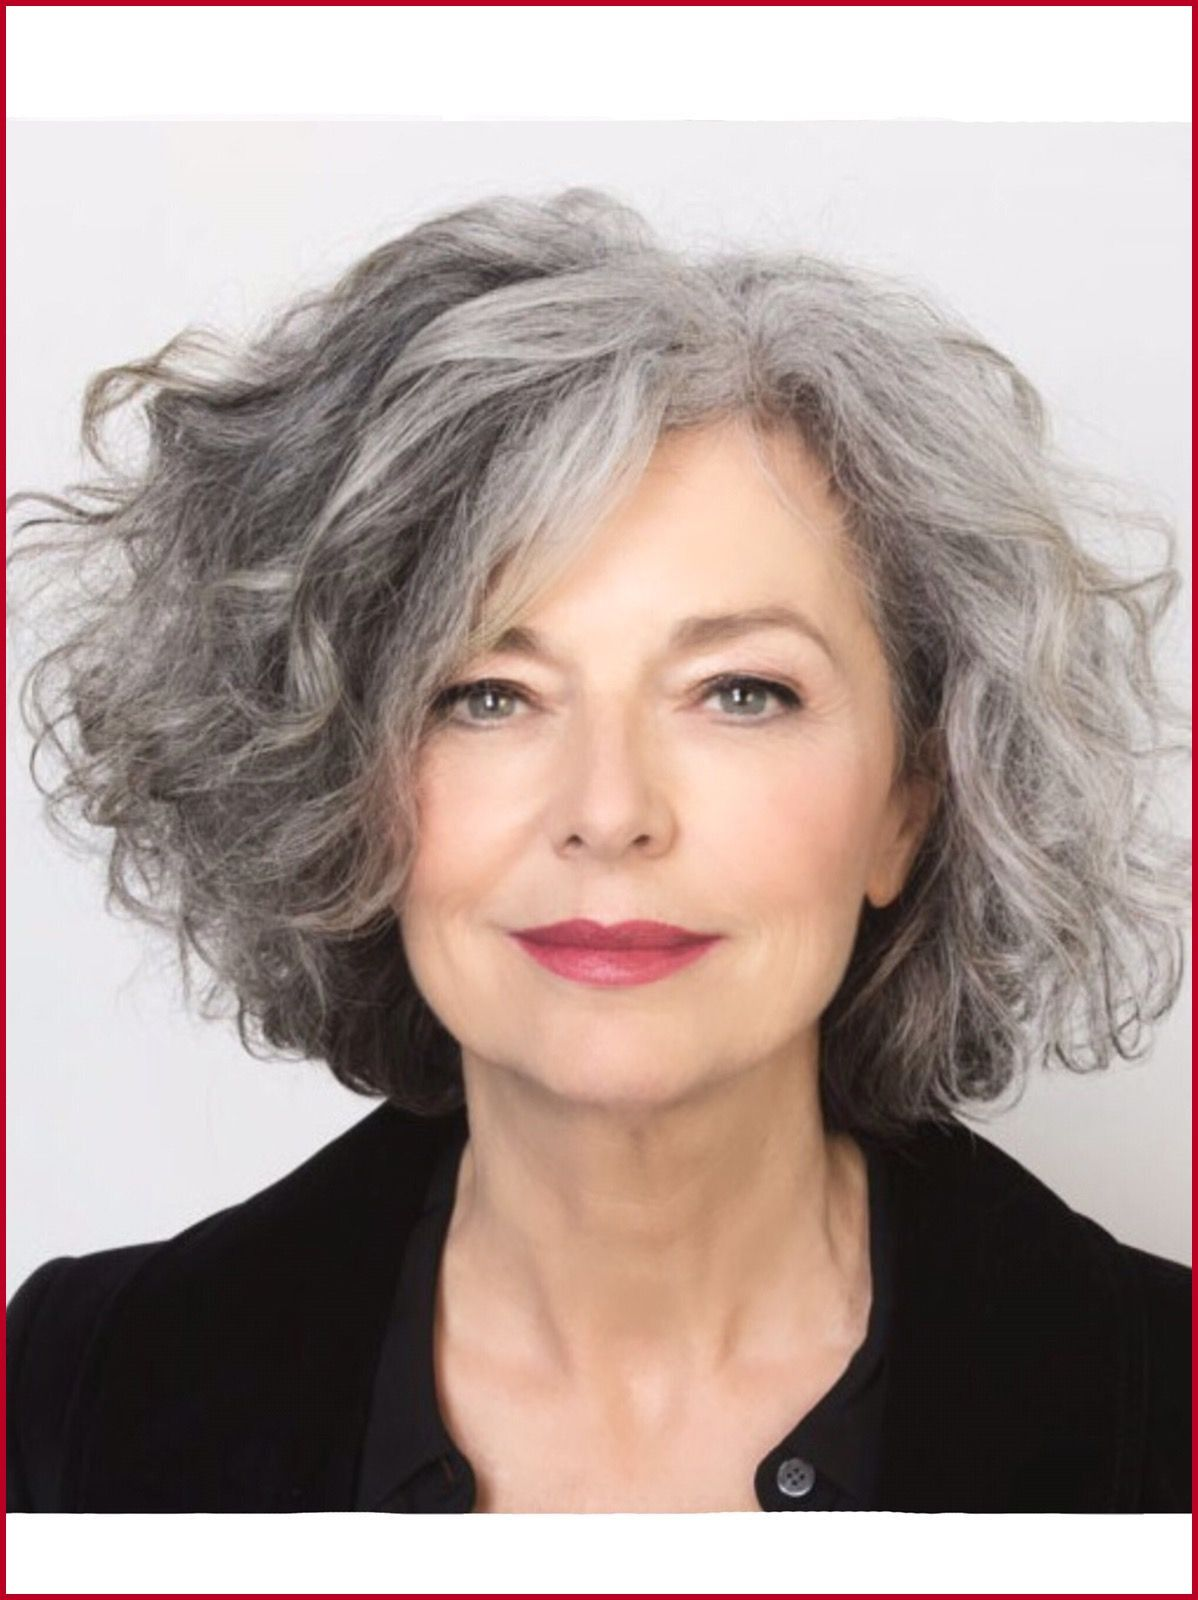 Long Gray Hair On Over 60 Google Search Hair Styles Medium Hair Styles Curly Hair Styles